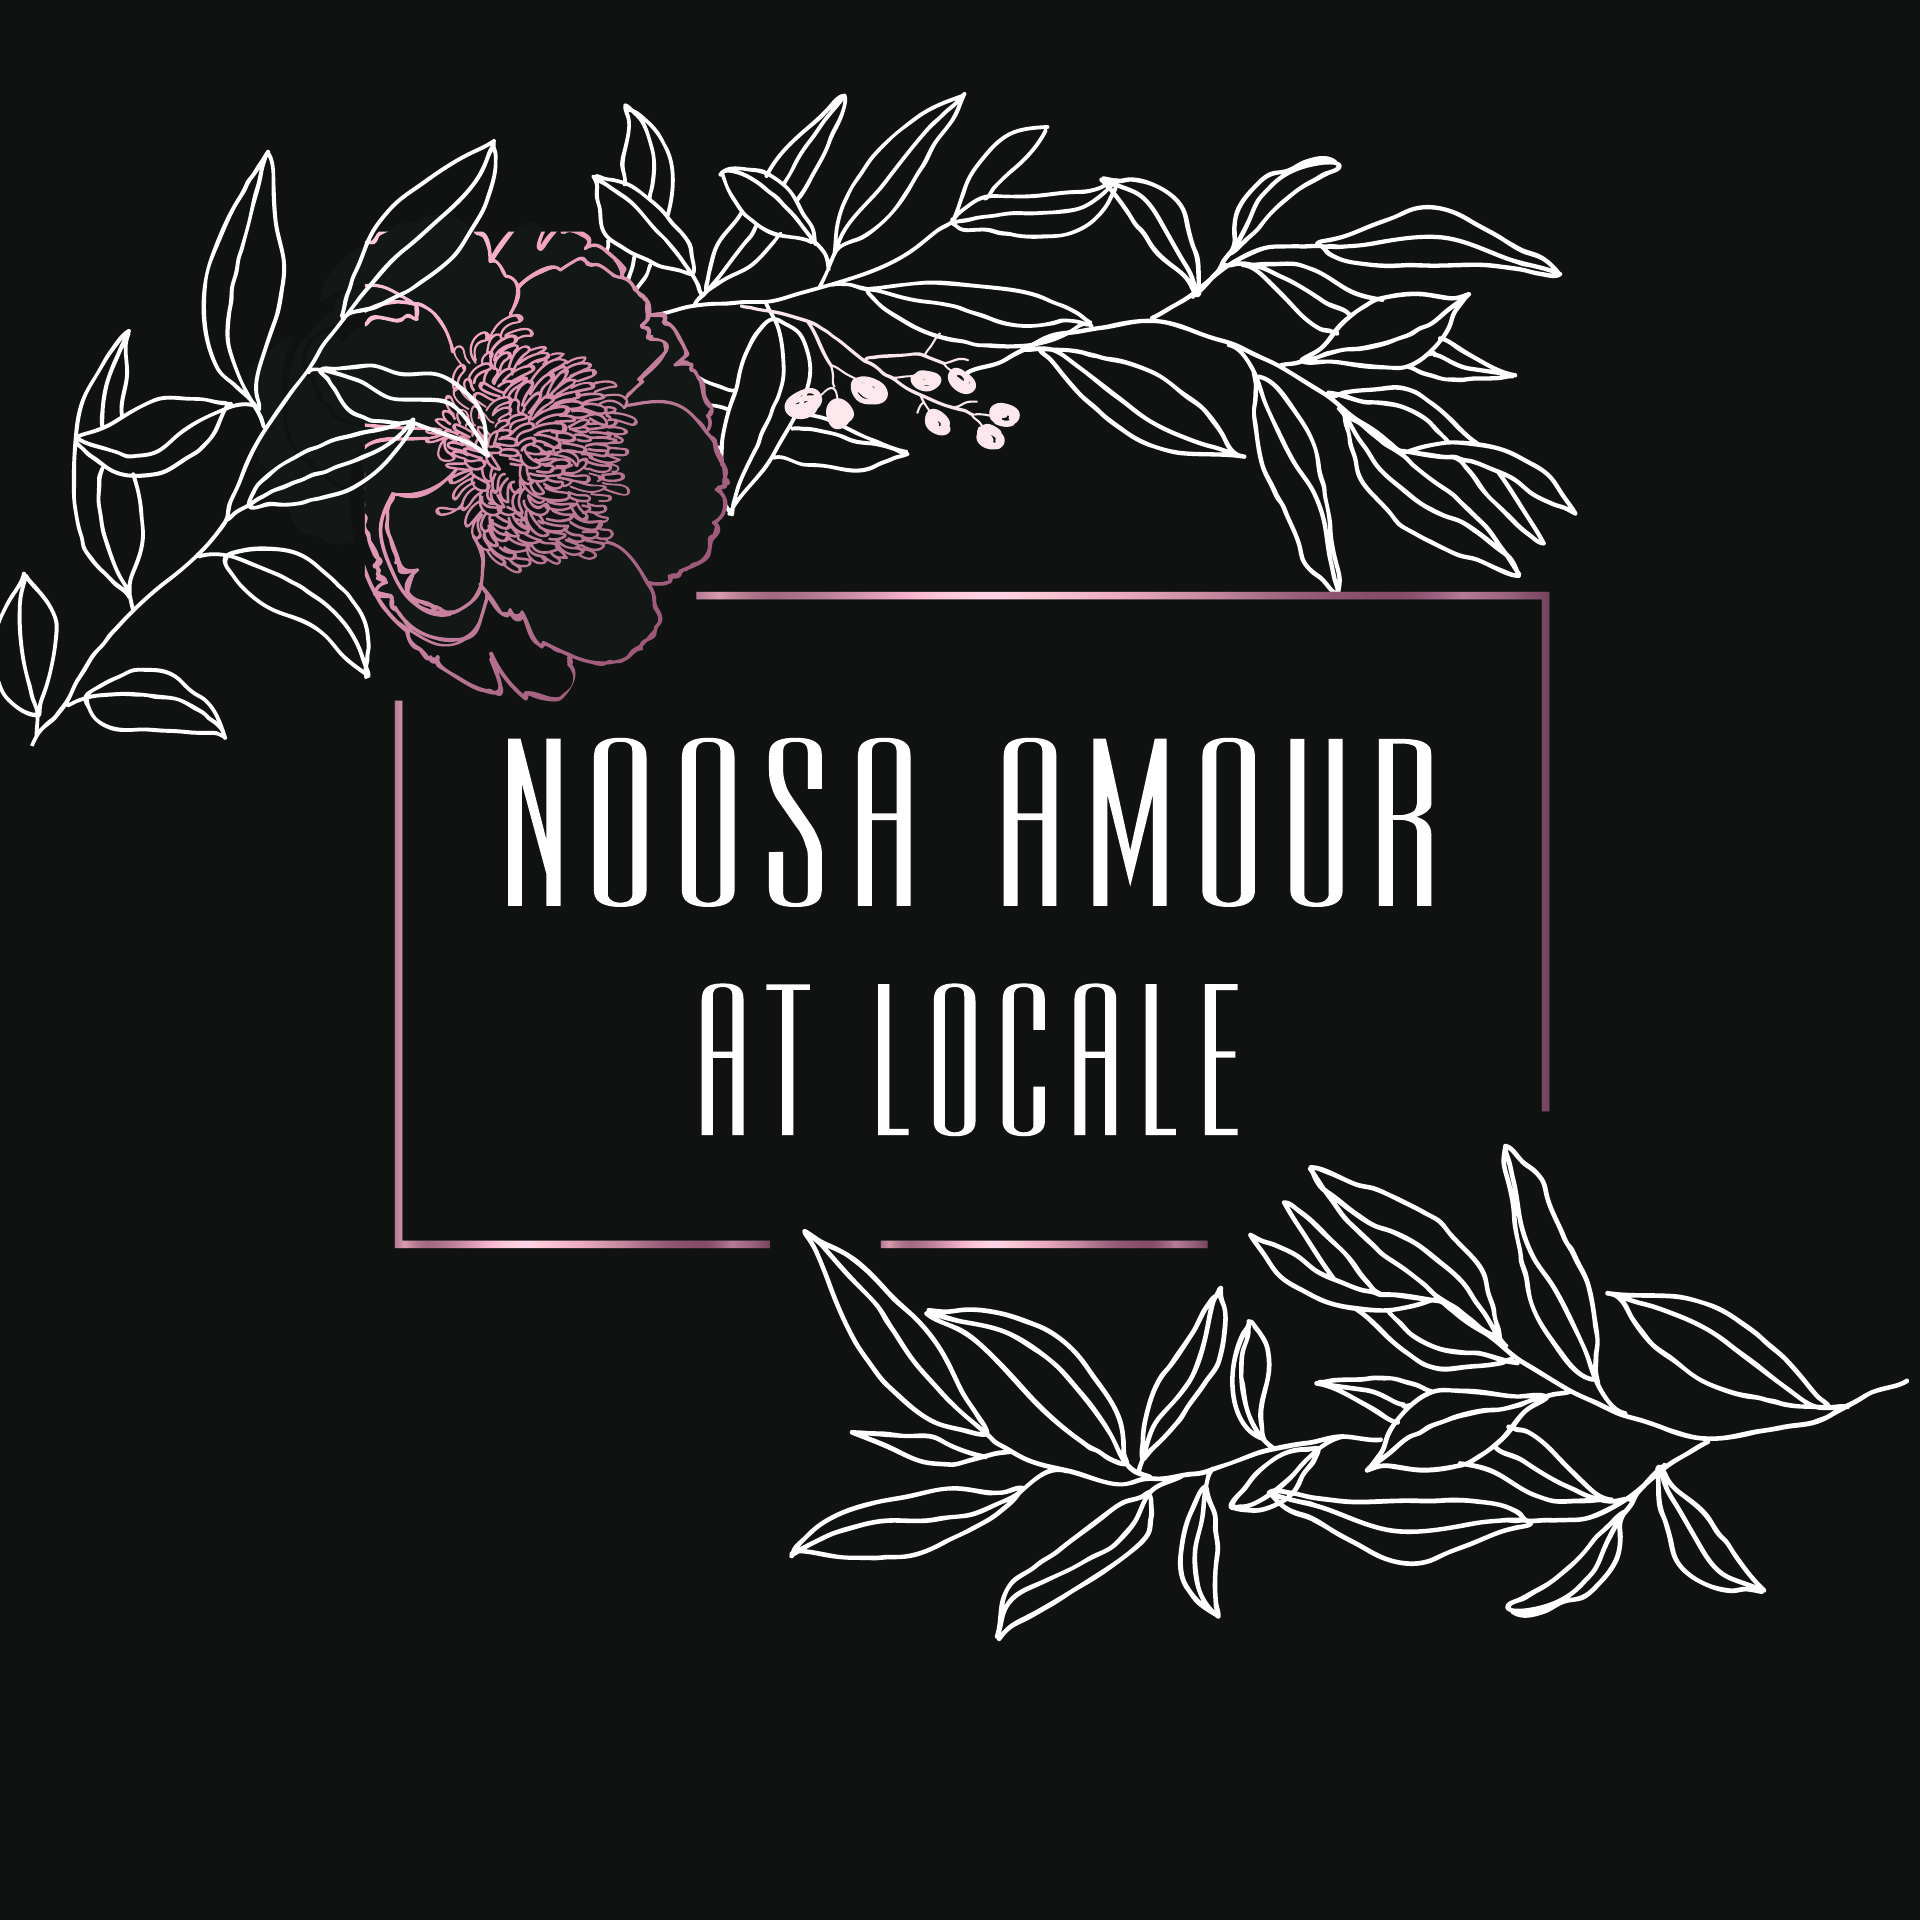 Noosa Amour Locale Noosa Restaurant And Bar